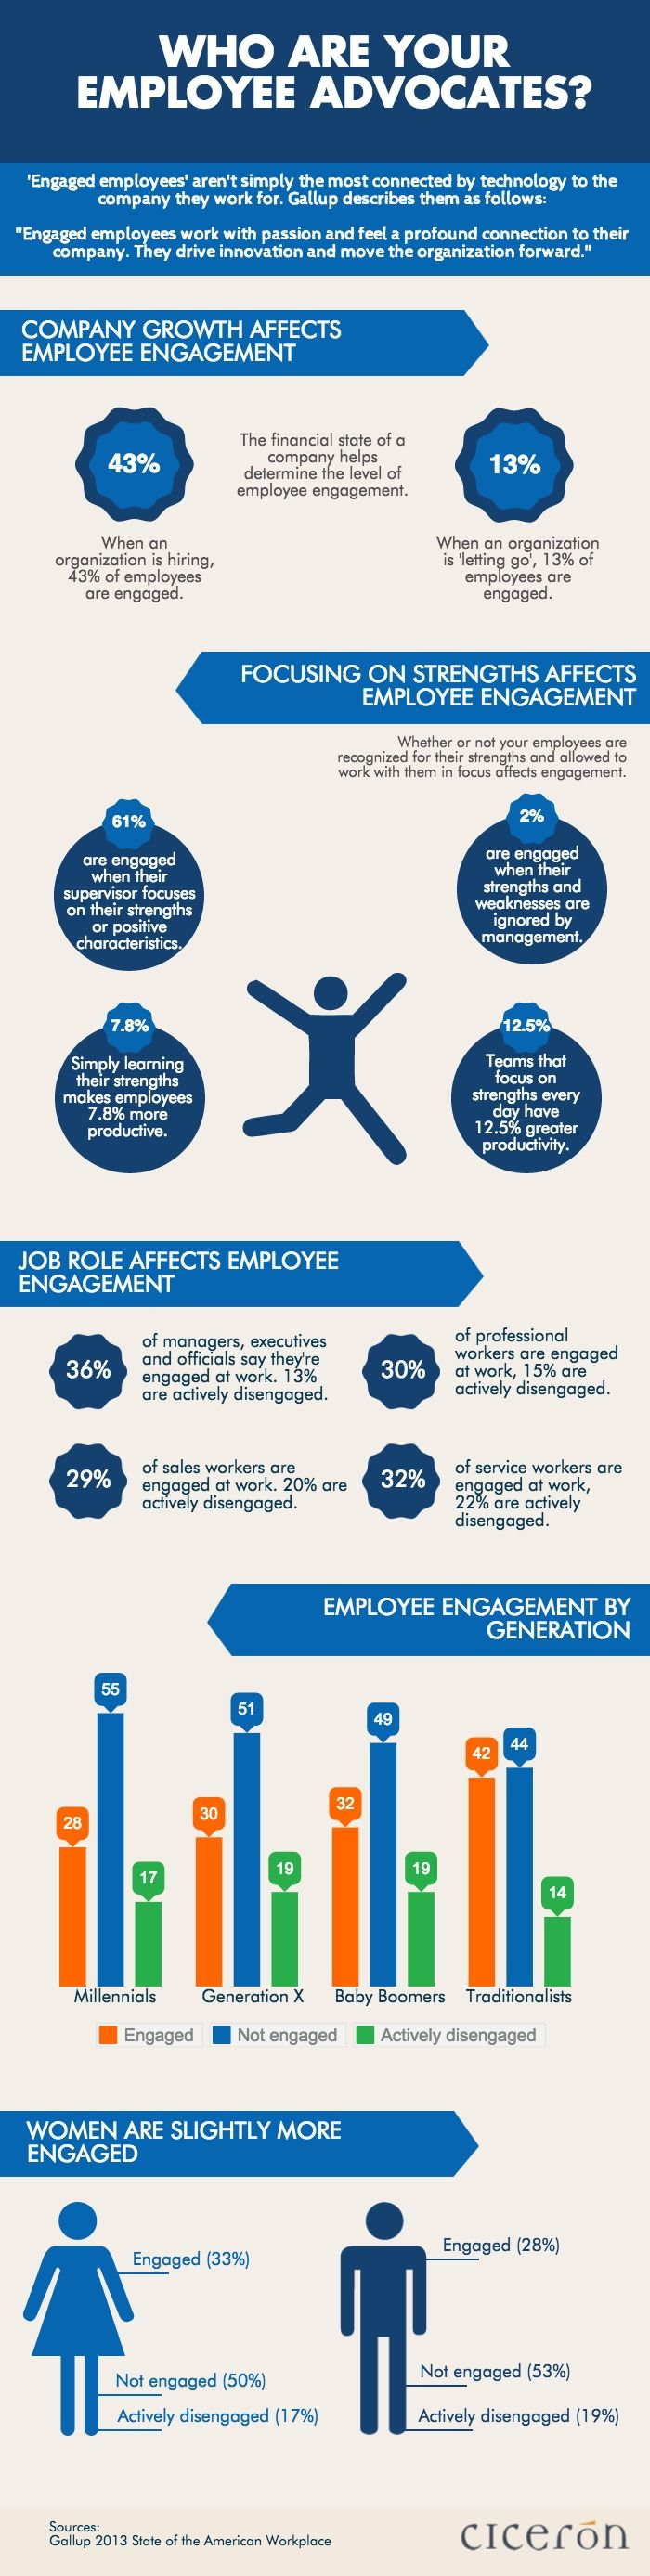 One of the most important factors in social media marketing is employee engagement. When your employees are engaged, they're more likely to feel positively about the company they work for. That positive sentiment leads to pride, which in turn makes them want to do their best work, and even further, share that work with their networks. Are your employees engaged?